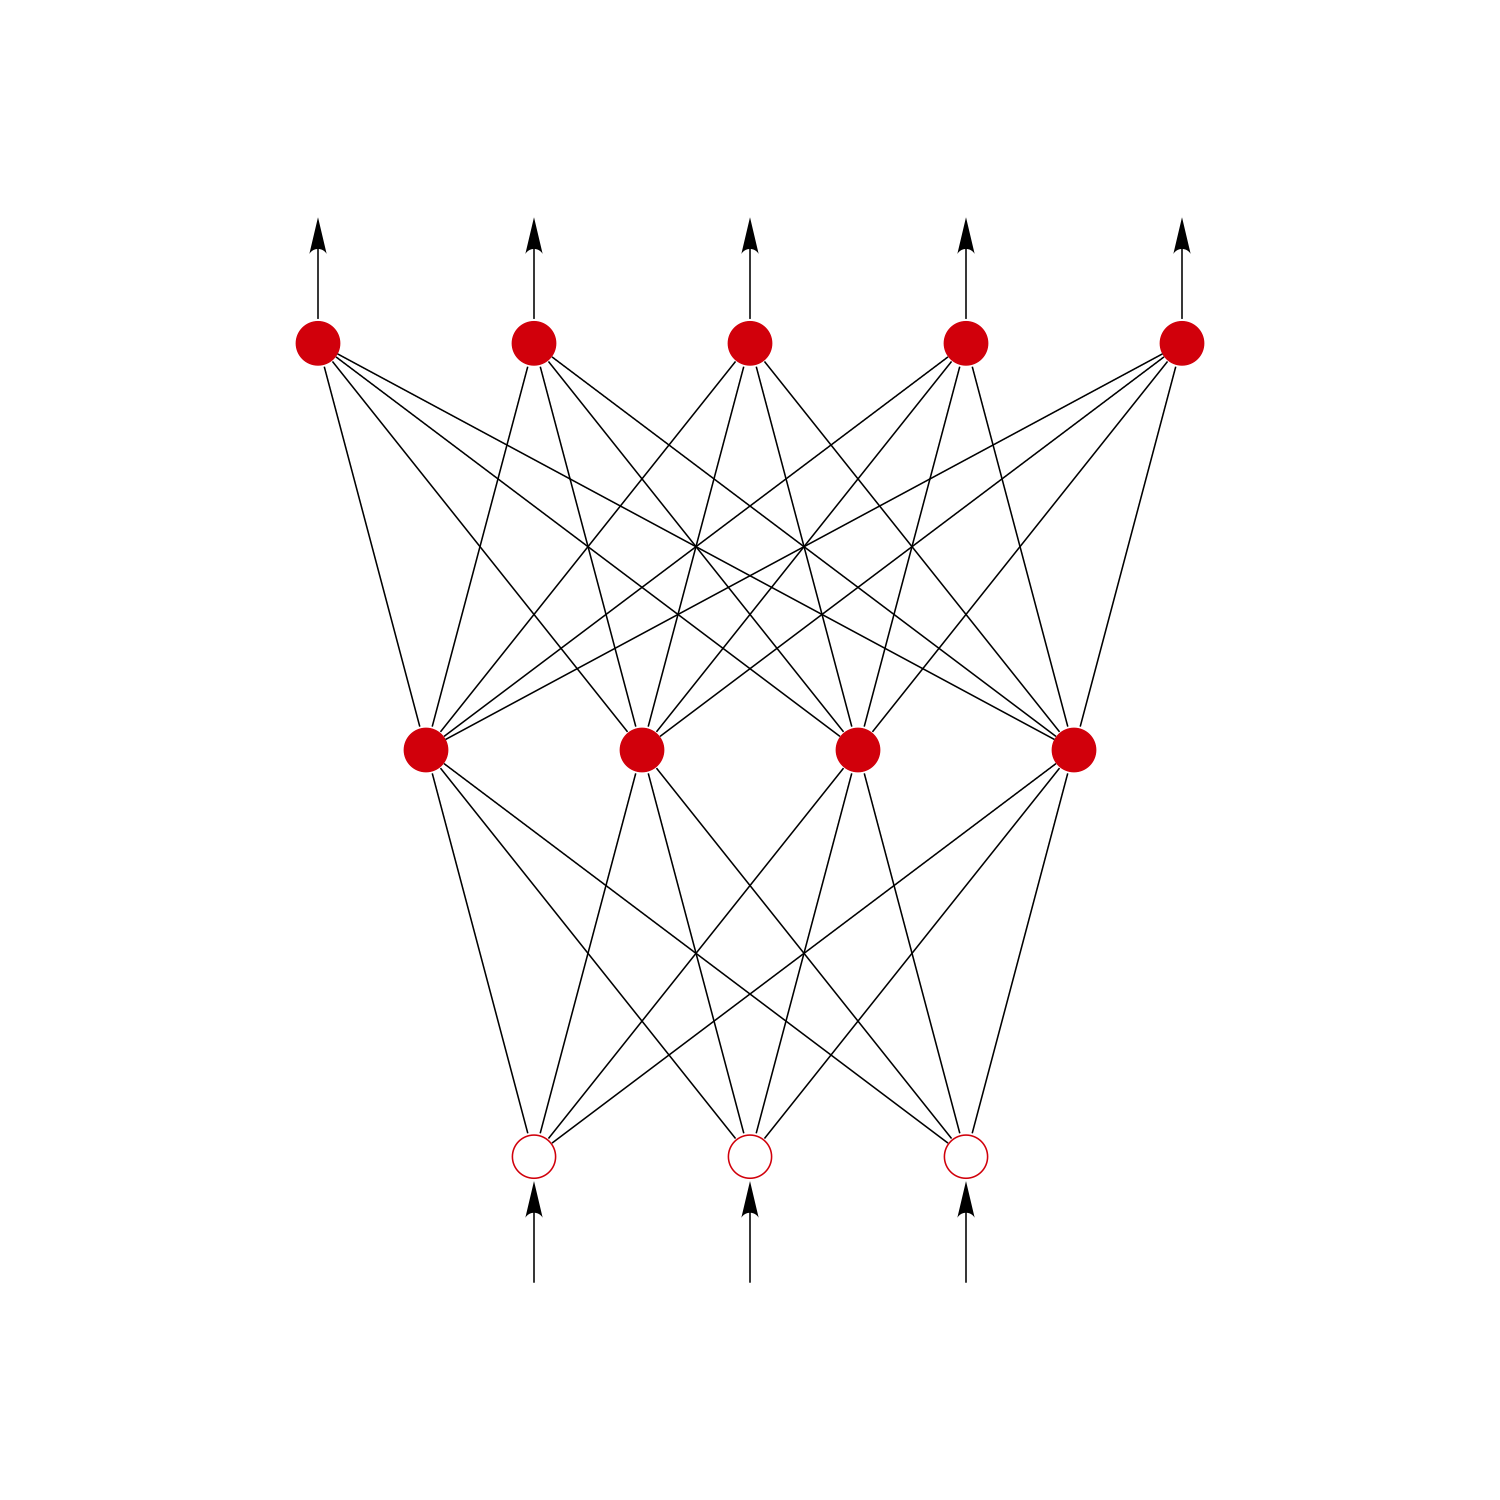 Phd thesis on neural network